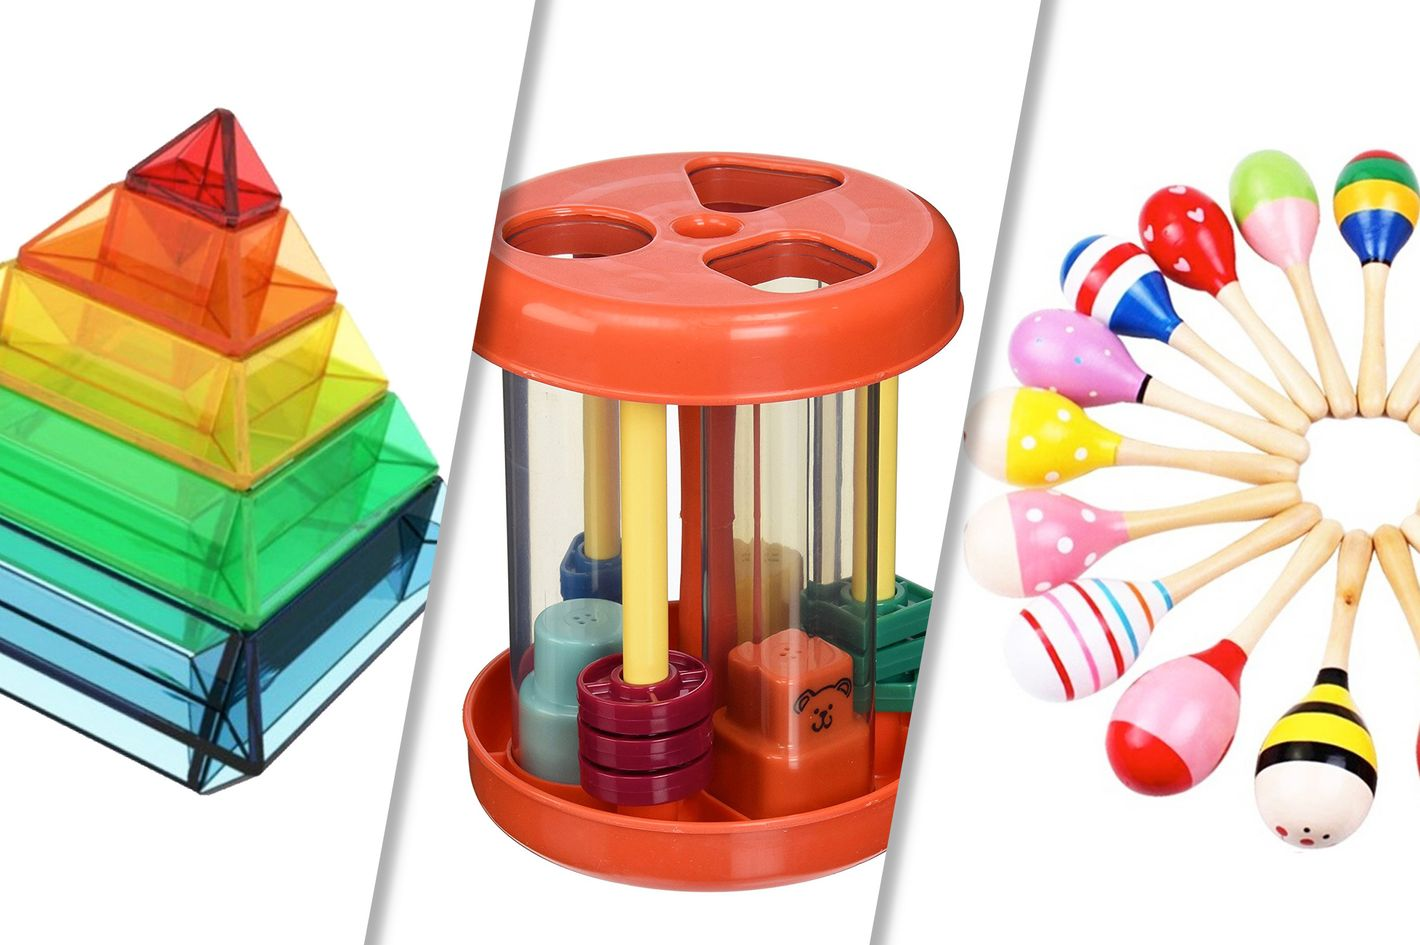 Toys For 2 Year Olds : What is the best toy for a year old toys model ideas